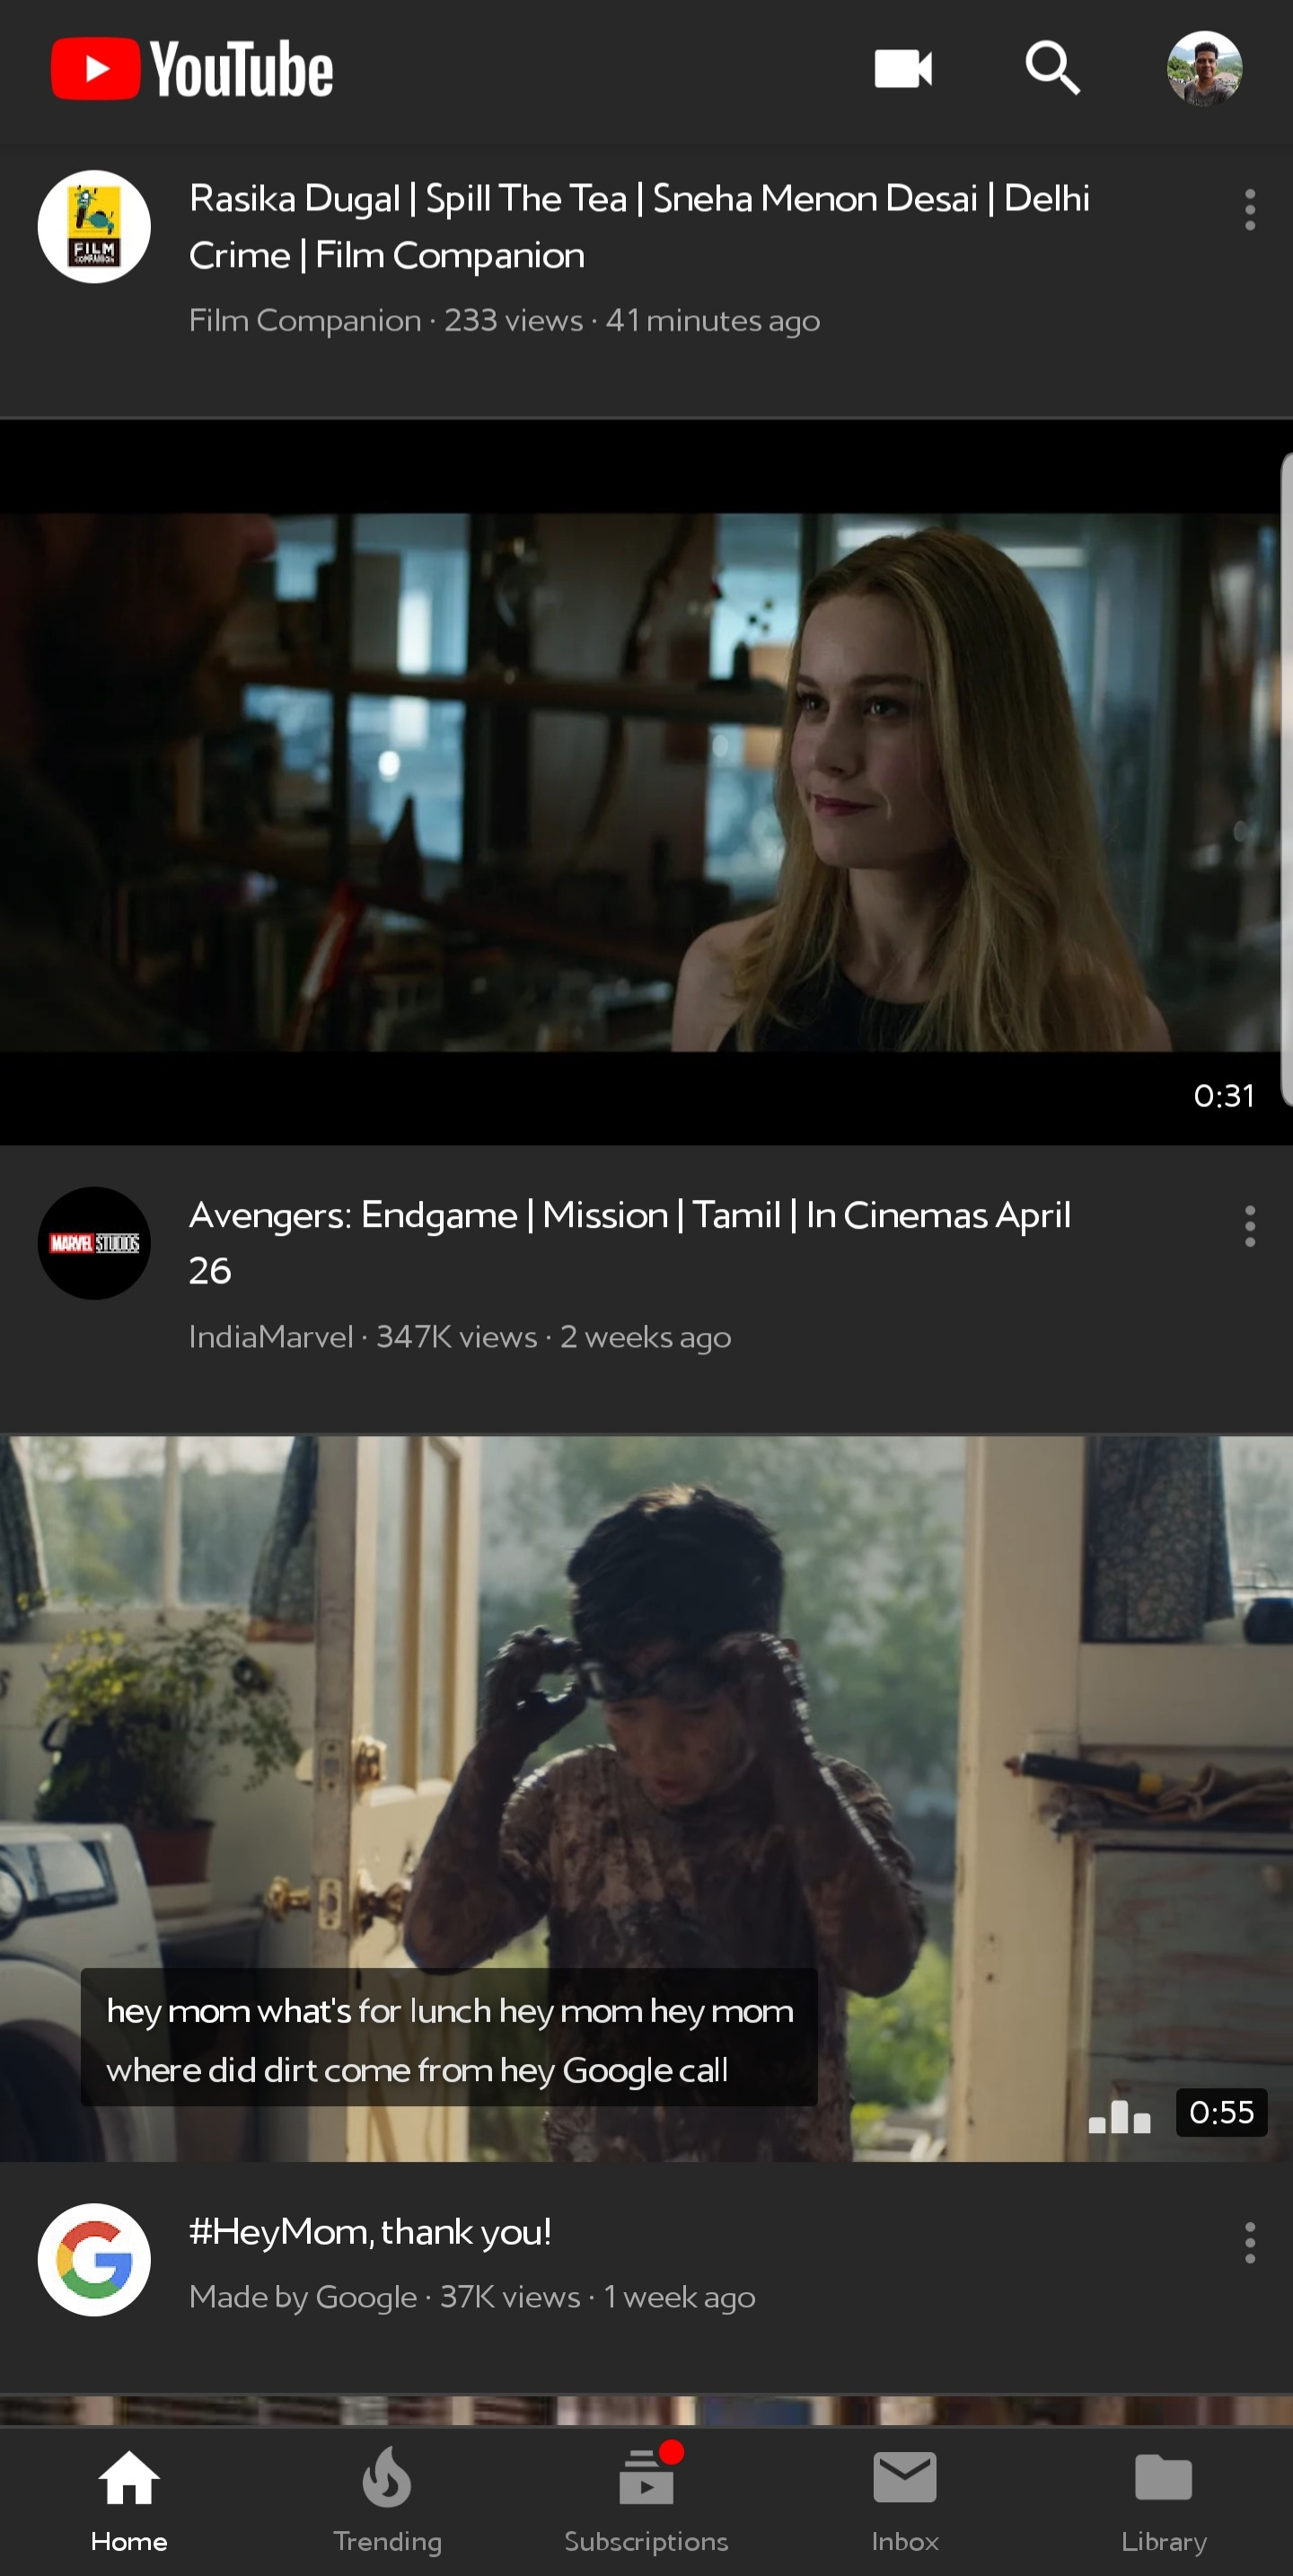 How To Live Stream Videos On YouTube's Android App